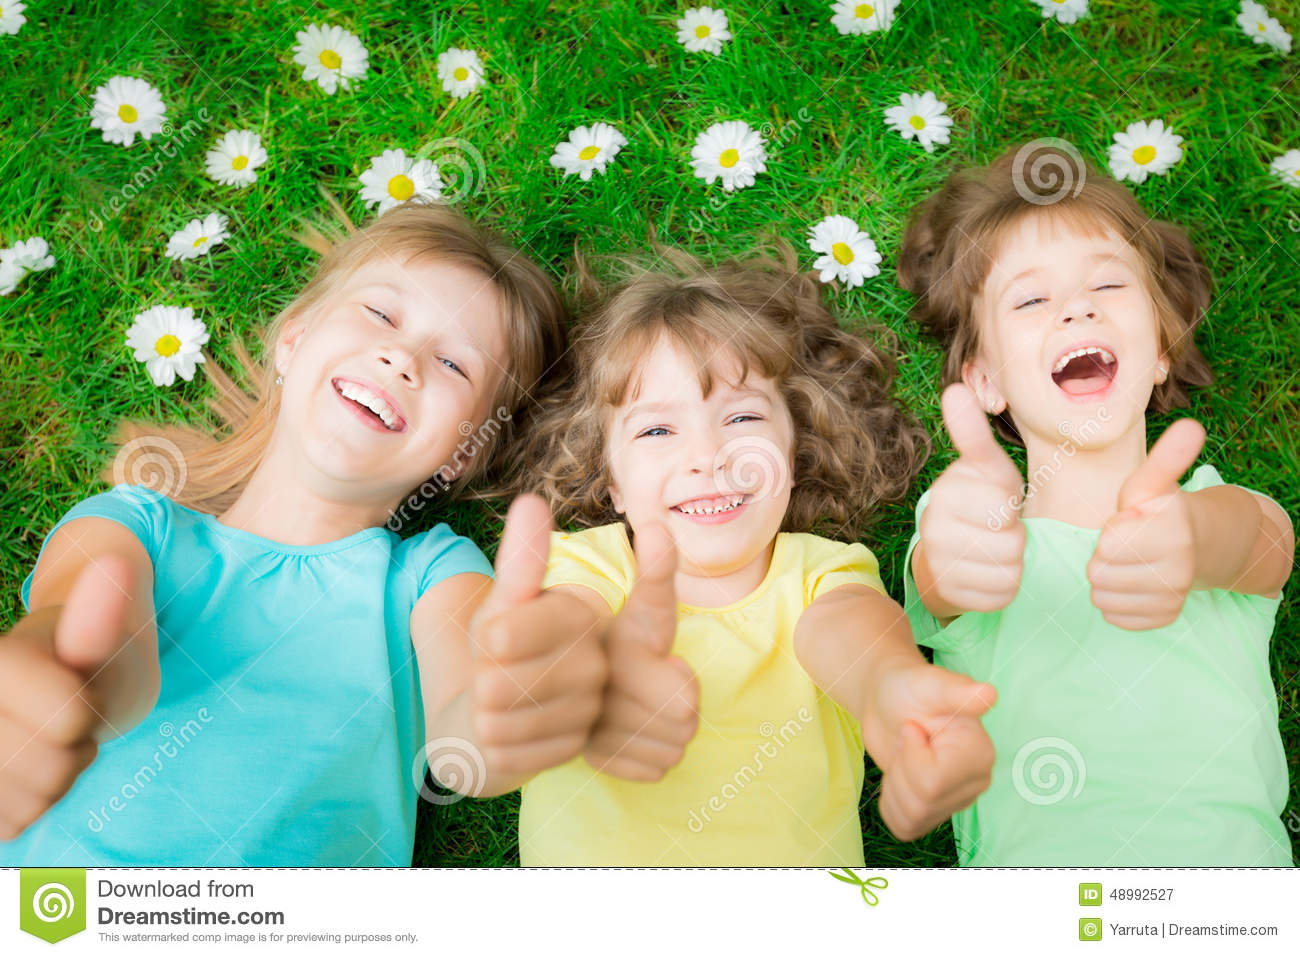 Happy Children Lying On Green Grass In Spring Park Laughing Kids Showing Thumbs Up